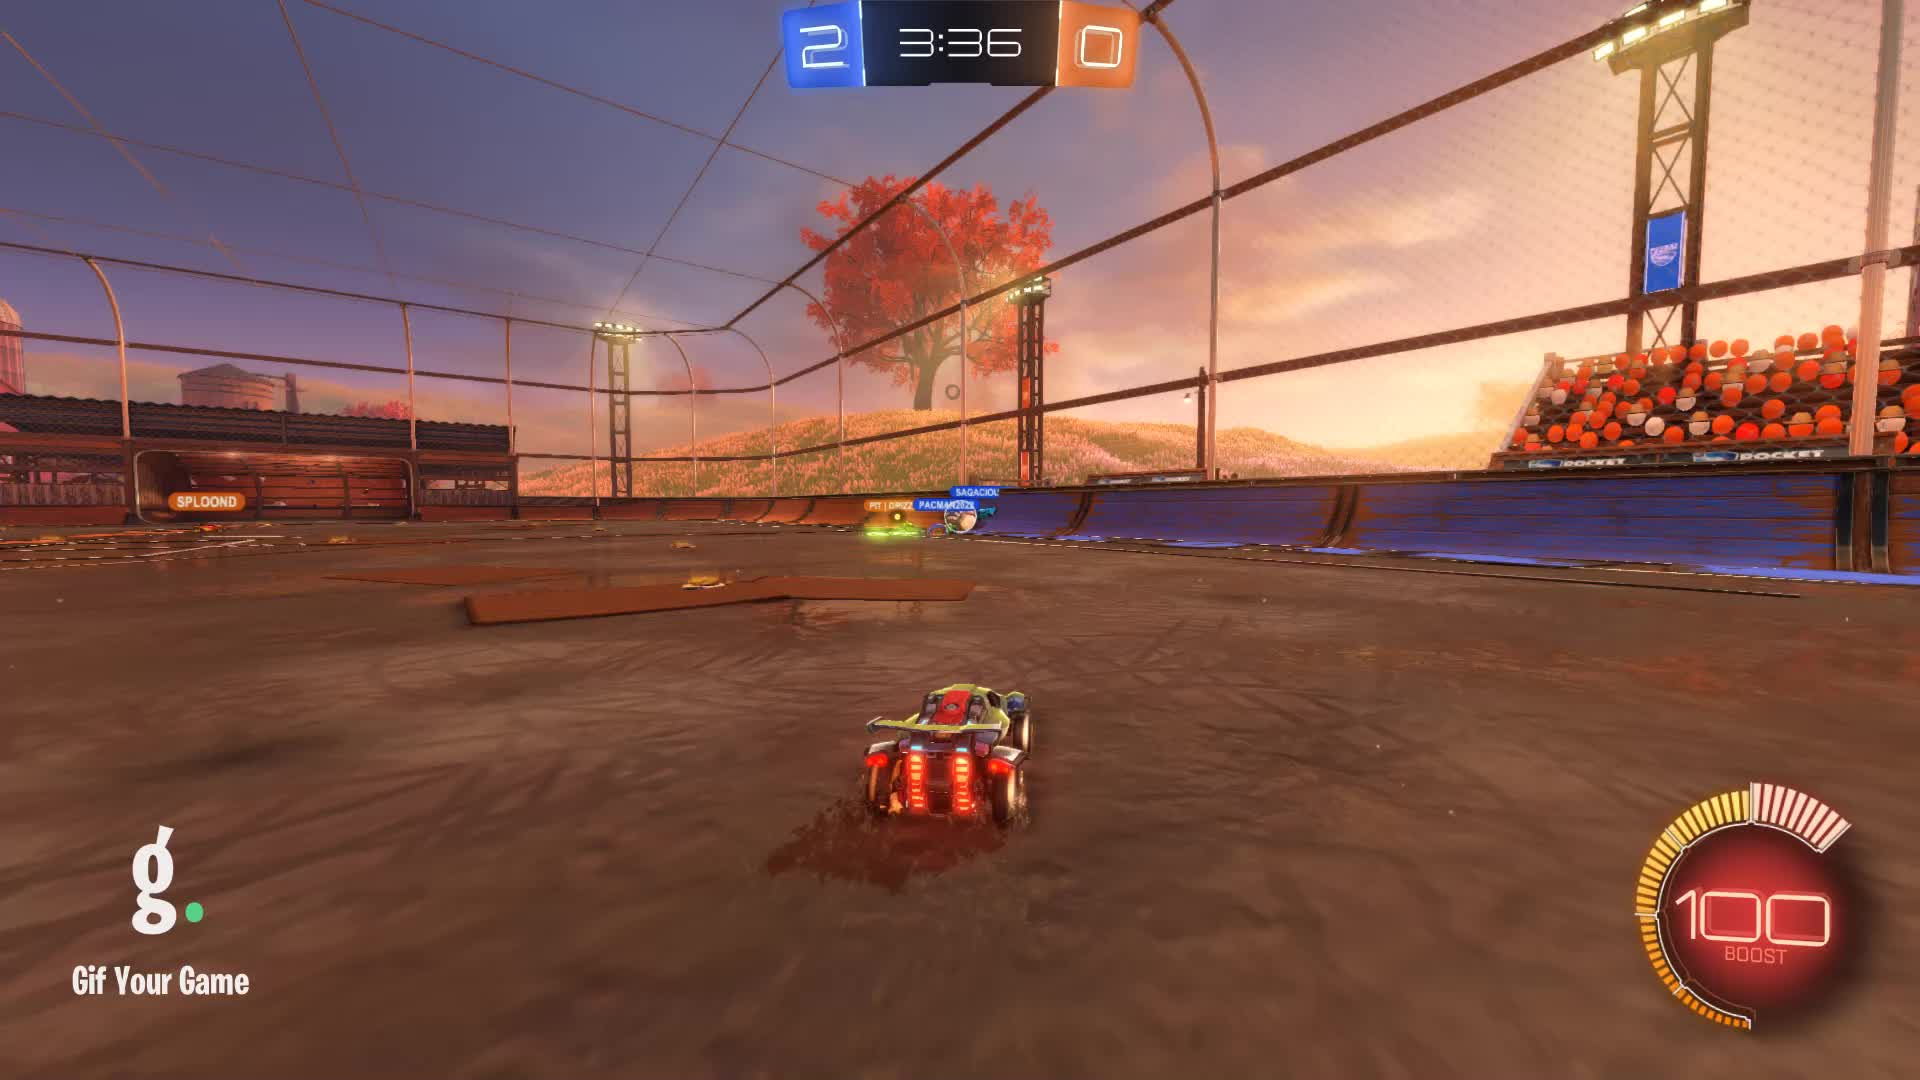 Gif Your Game, GifYourGame, ItWas...Justified, Rocket League, RocketLeague, ItWas...Justified Clip 1 GIFs